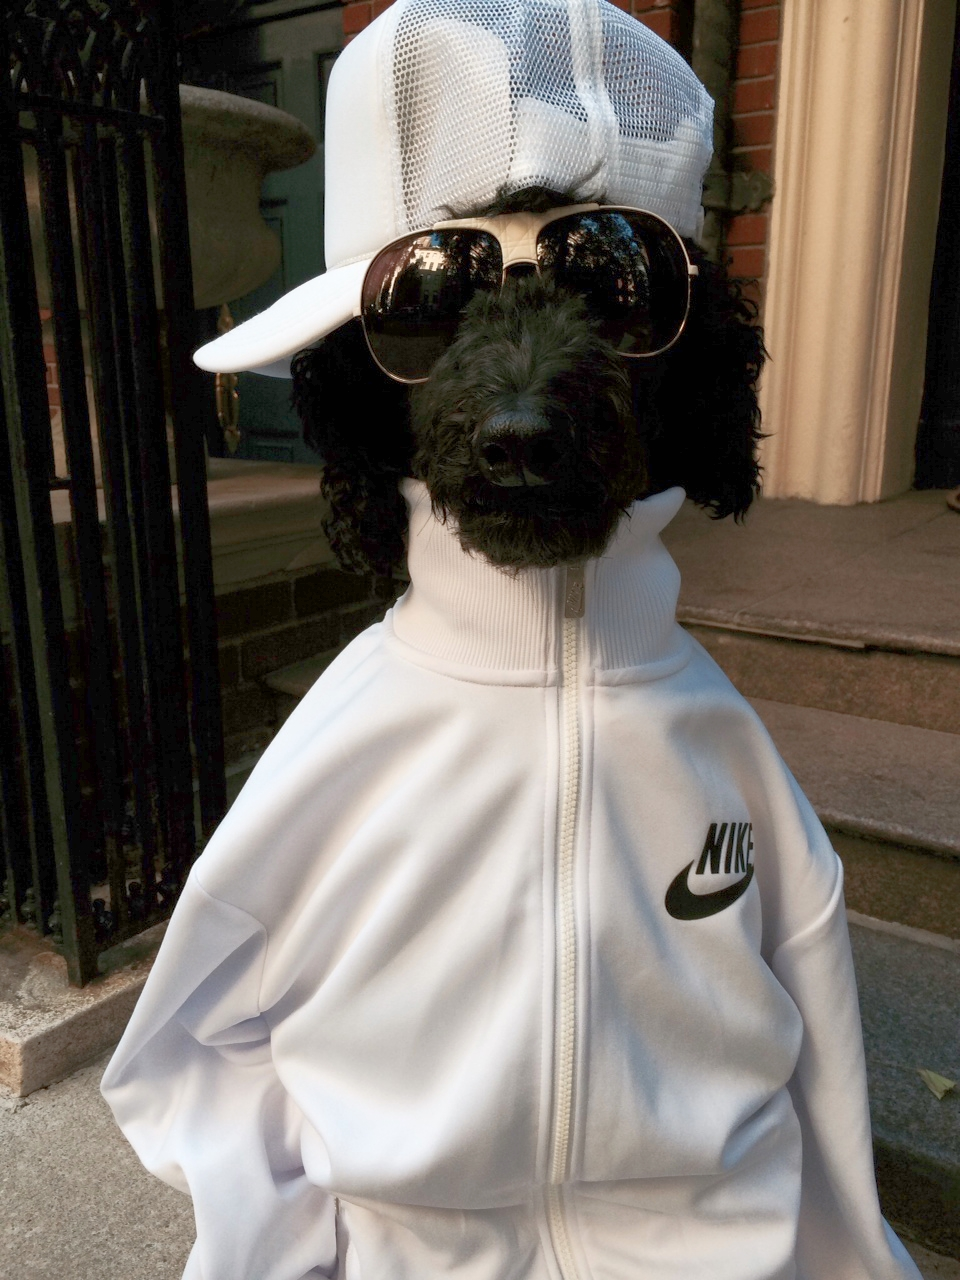 Nike Jacket, Otto baseball hat, Carrera sunglasses